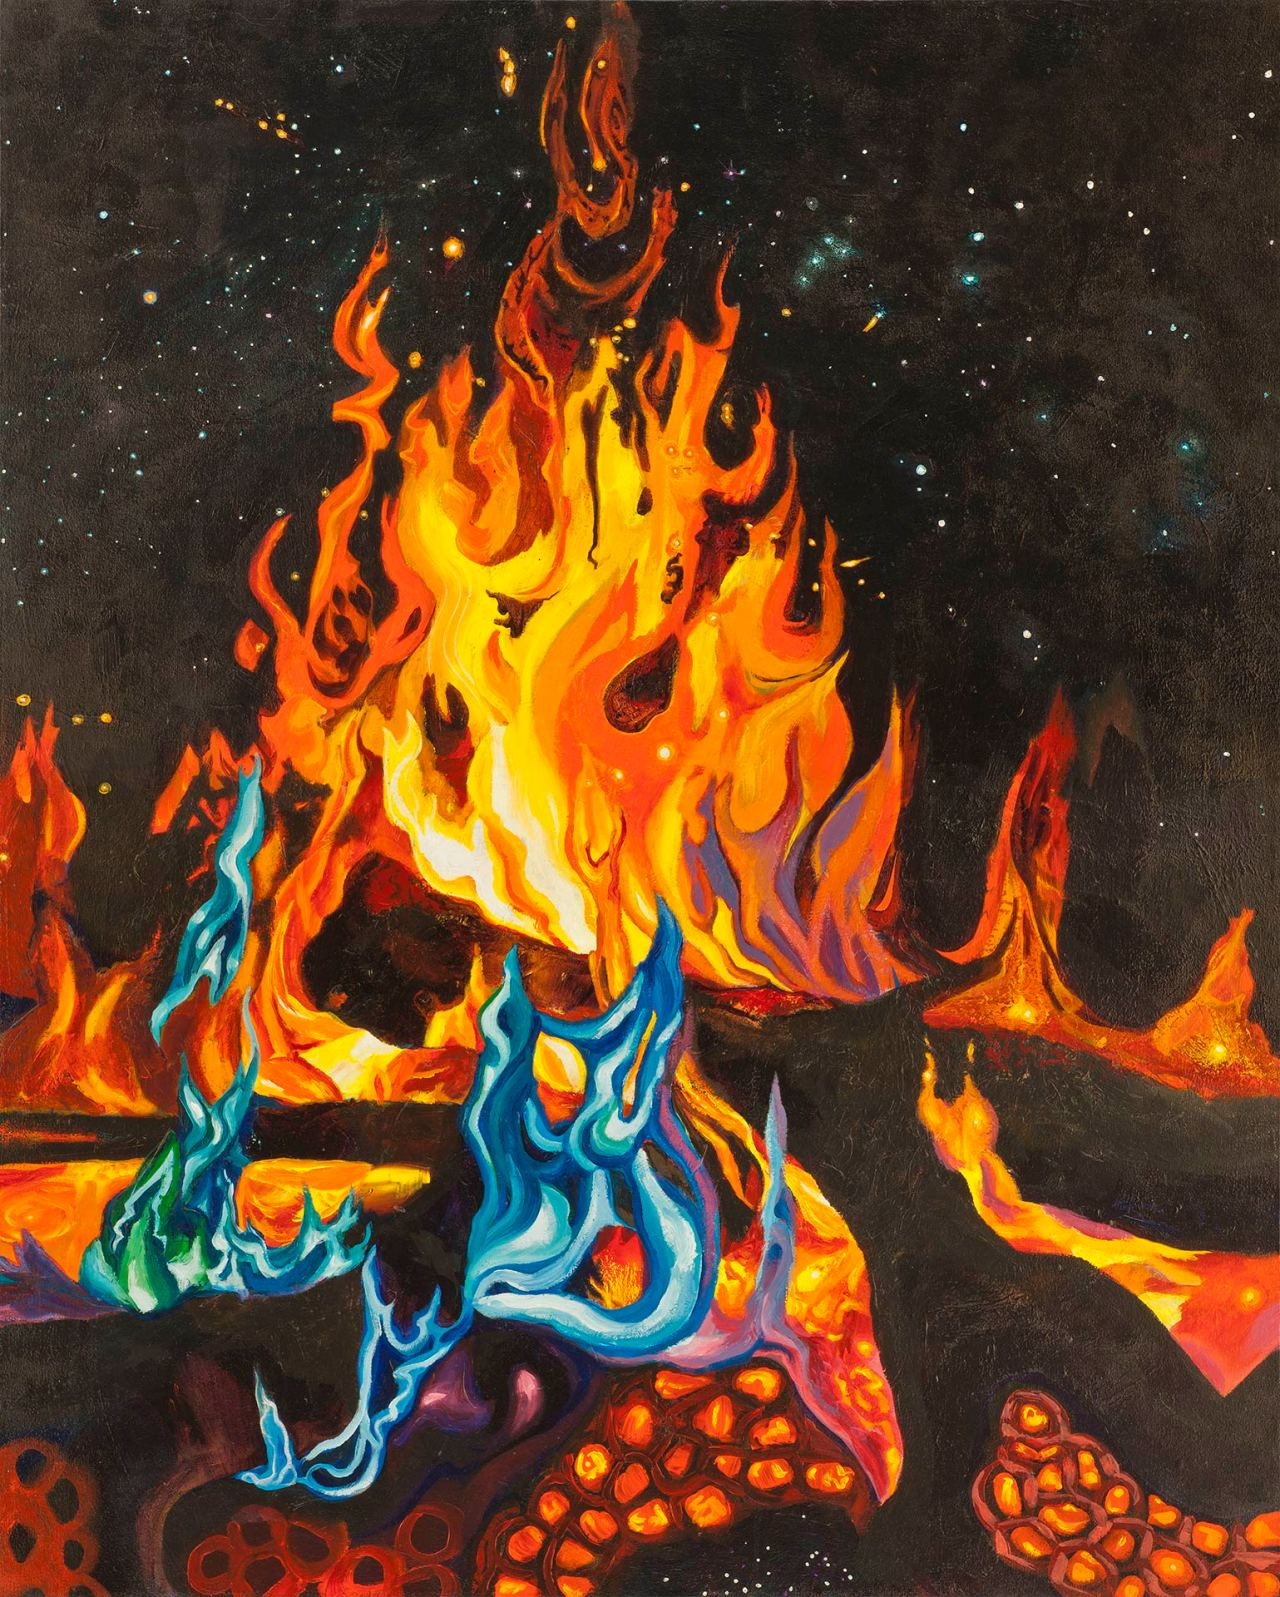 """Image of a painting by Steve Miller titled Campfire and Stars, 40"""" x 50"""", acrylic on canvas, completed 12/14/11, © Steve Miller 2011"""